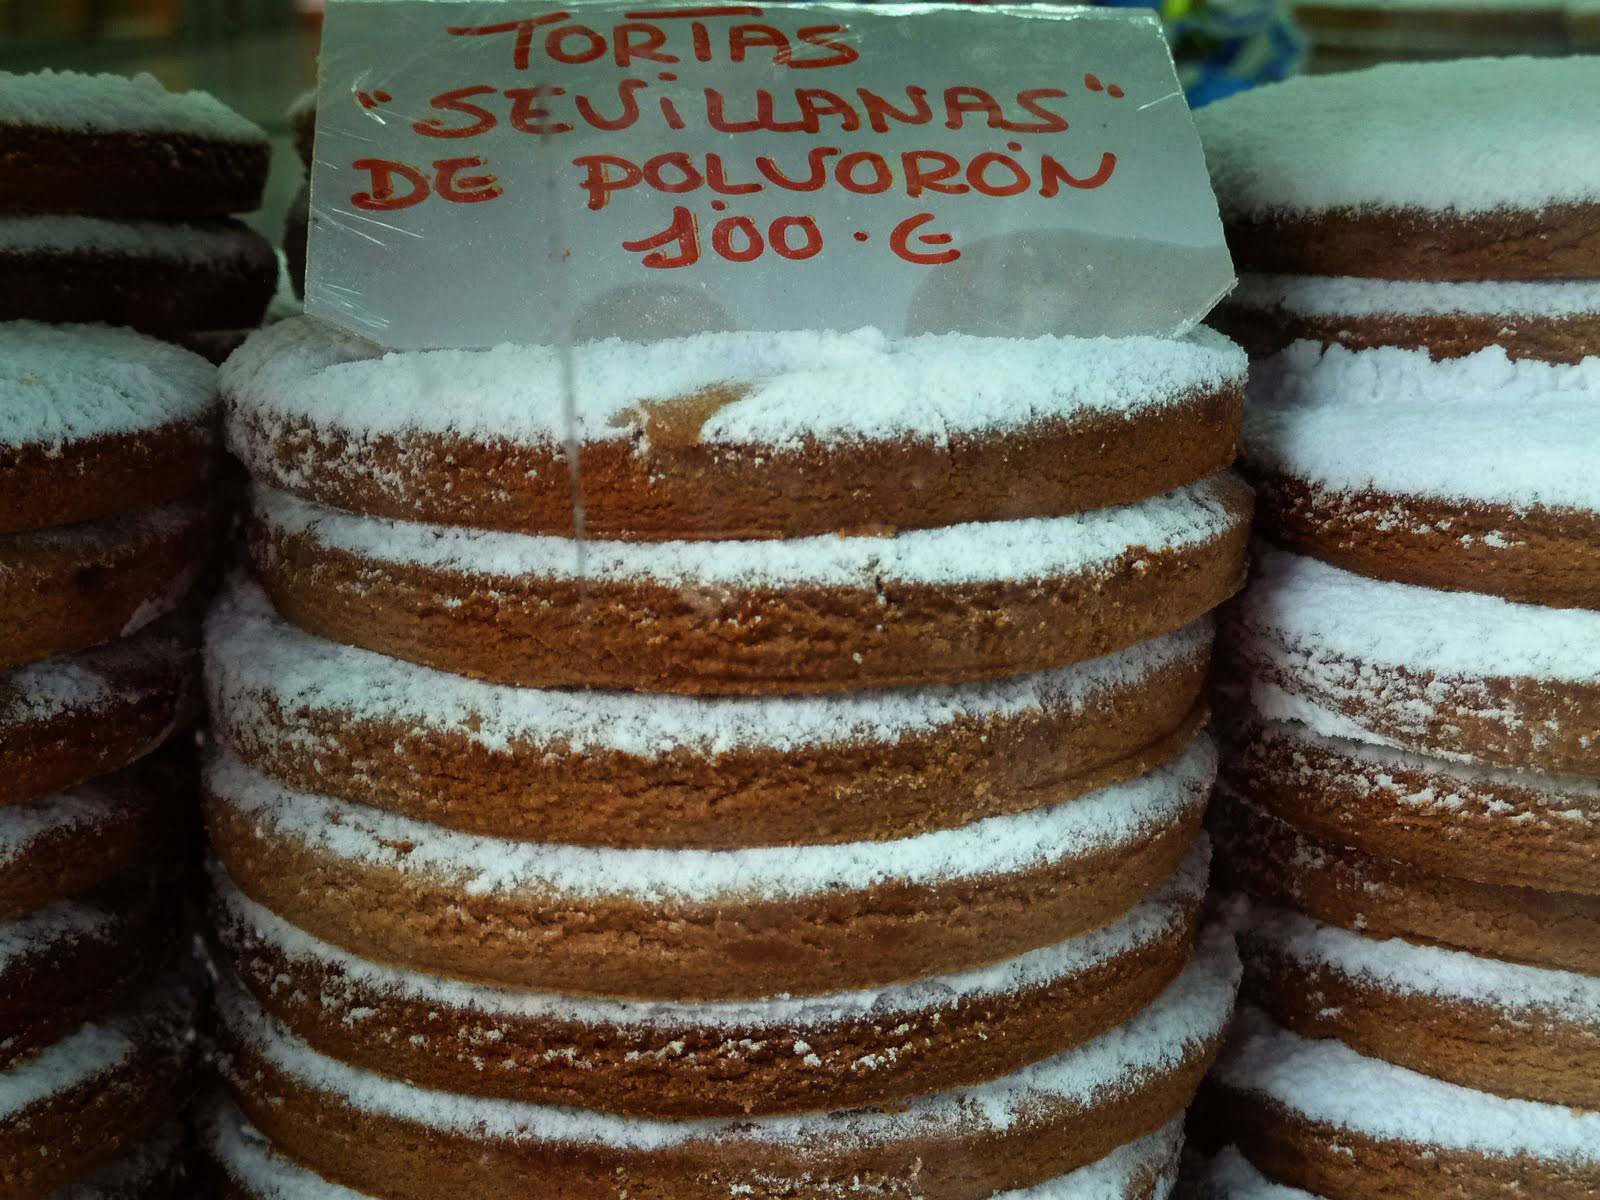 Convent Sweets in Spain and Portugal - Sevilla's Cookies